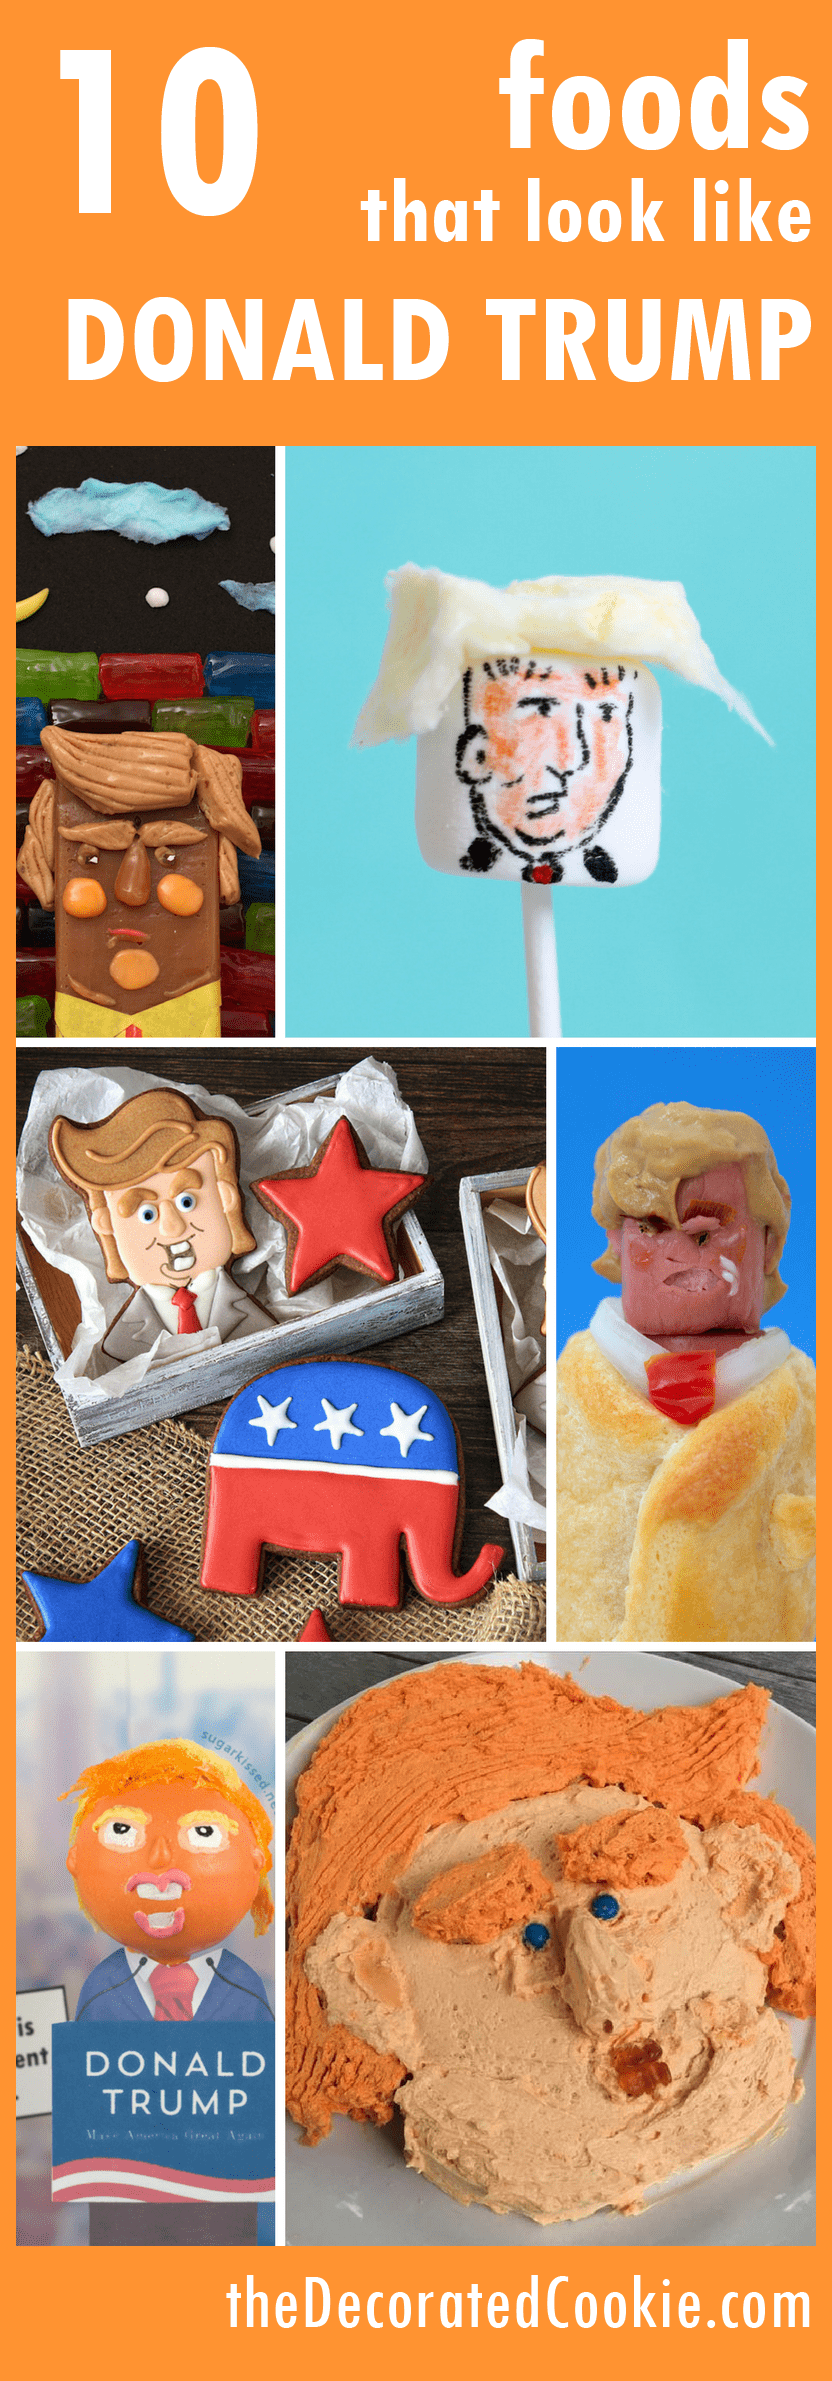 10 foods that look like Donald Trump